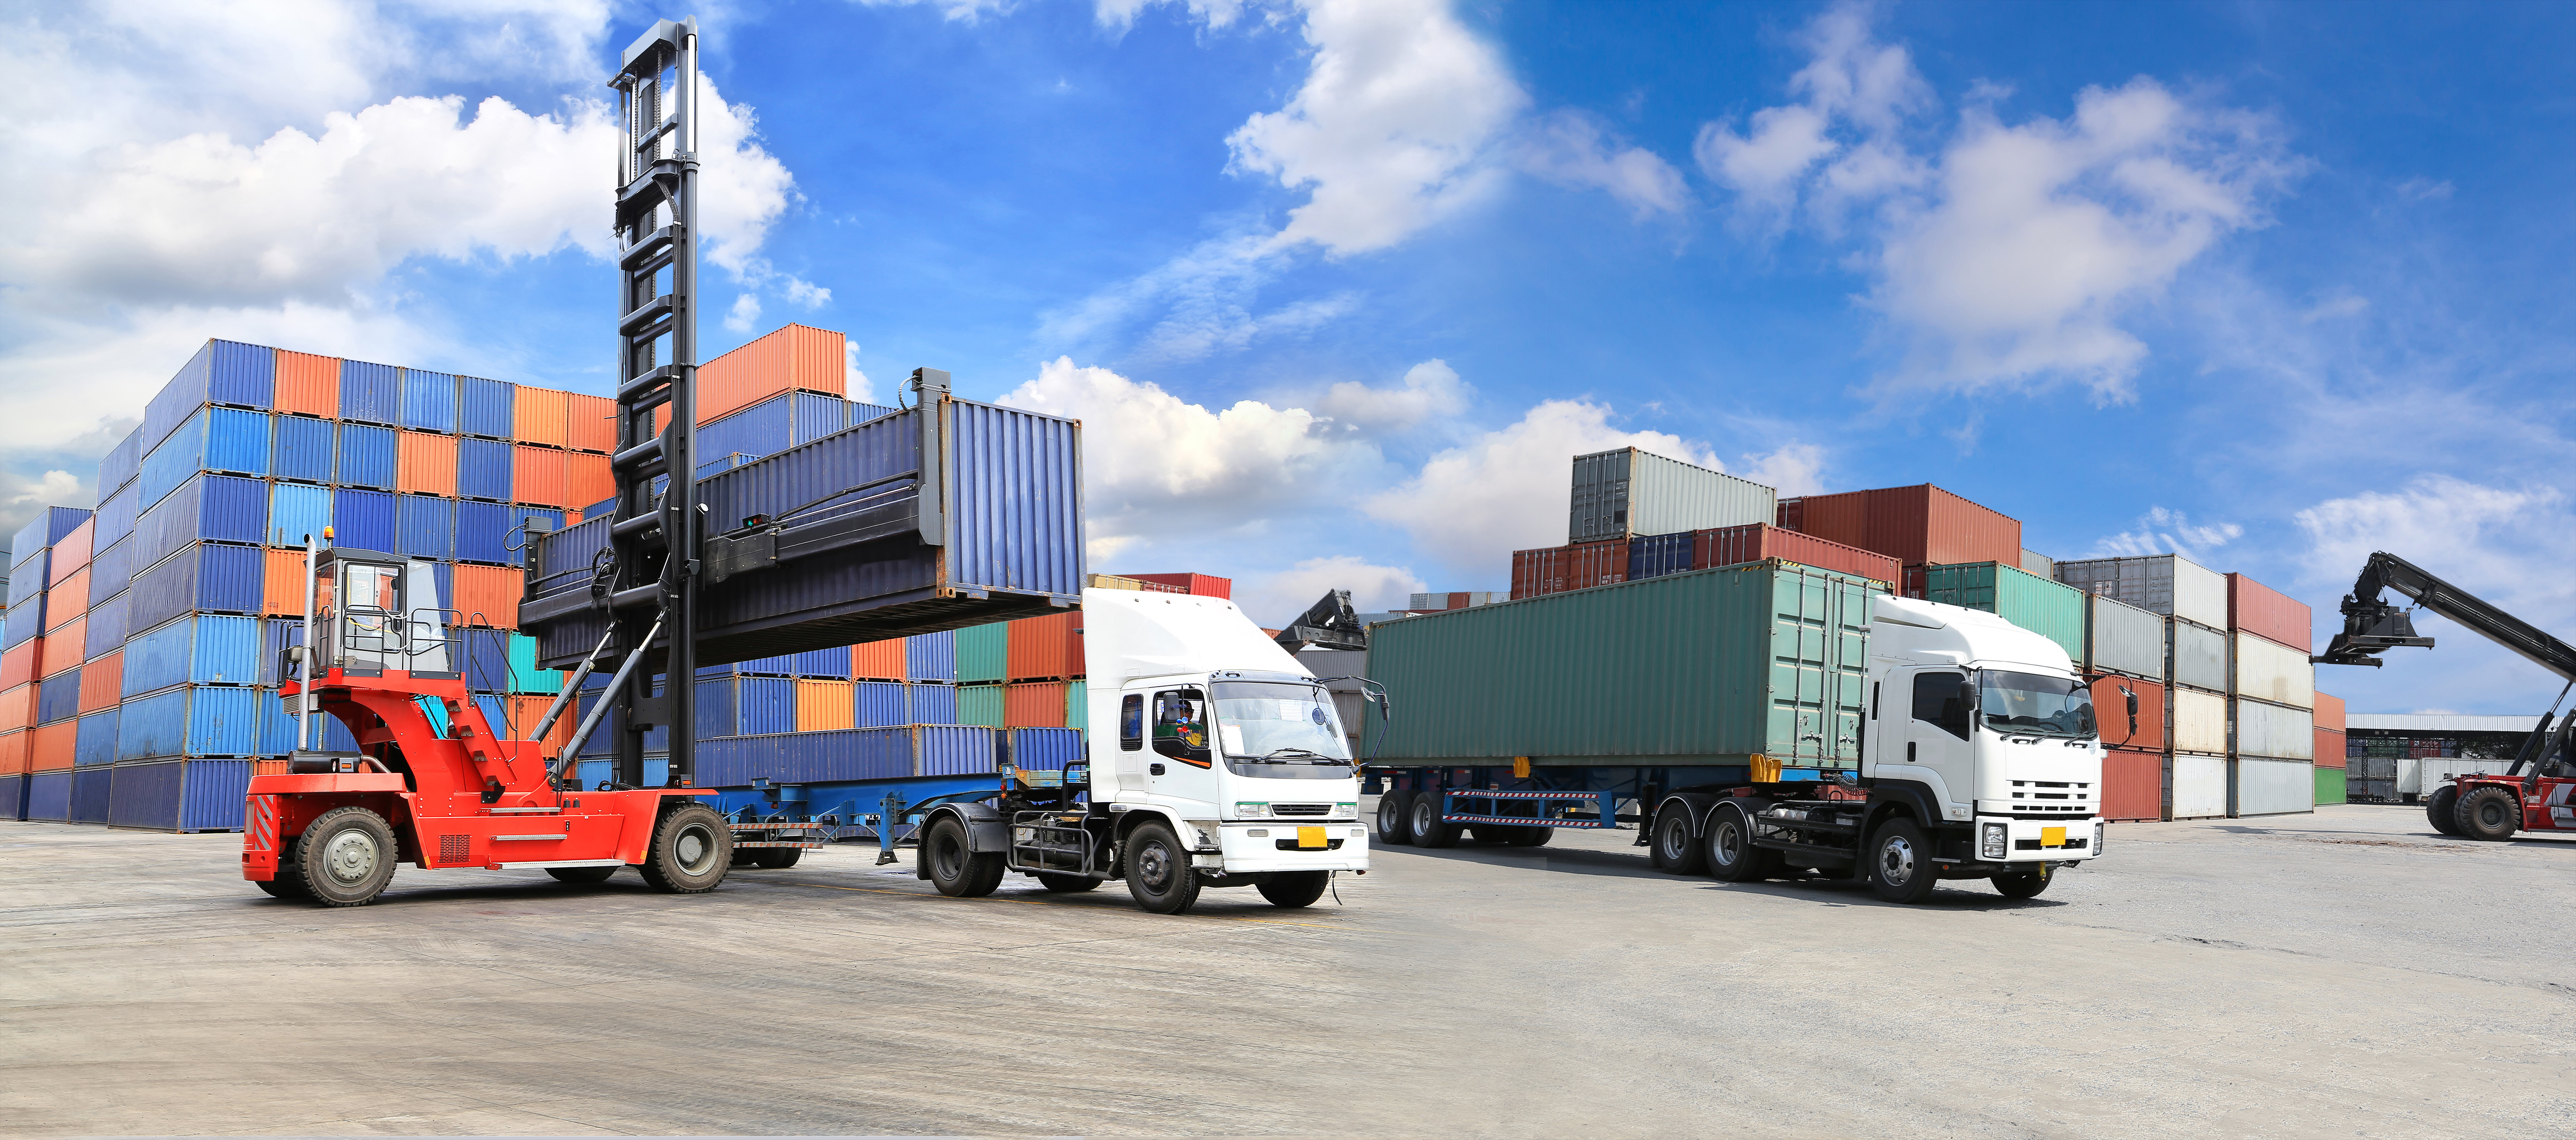 Supply Chain Management Is Changing: Are You Ready?   LMI